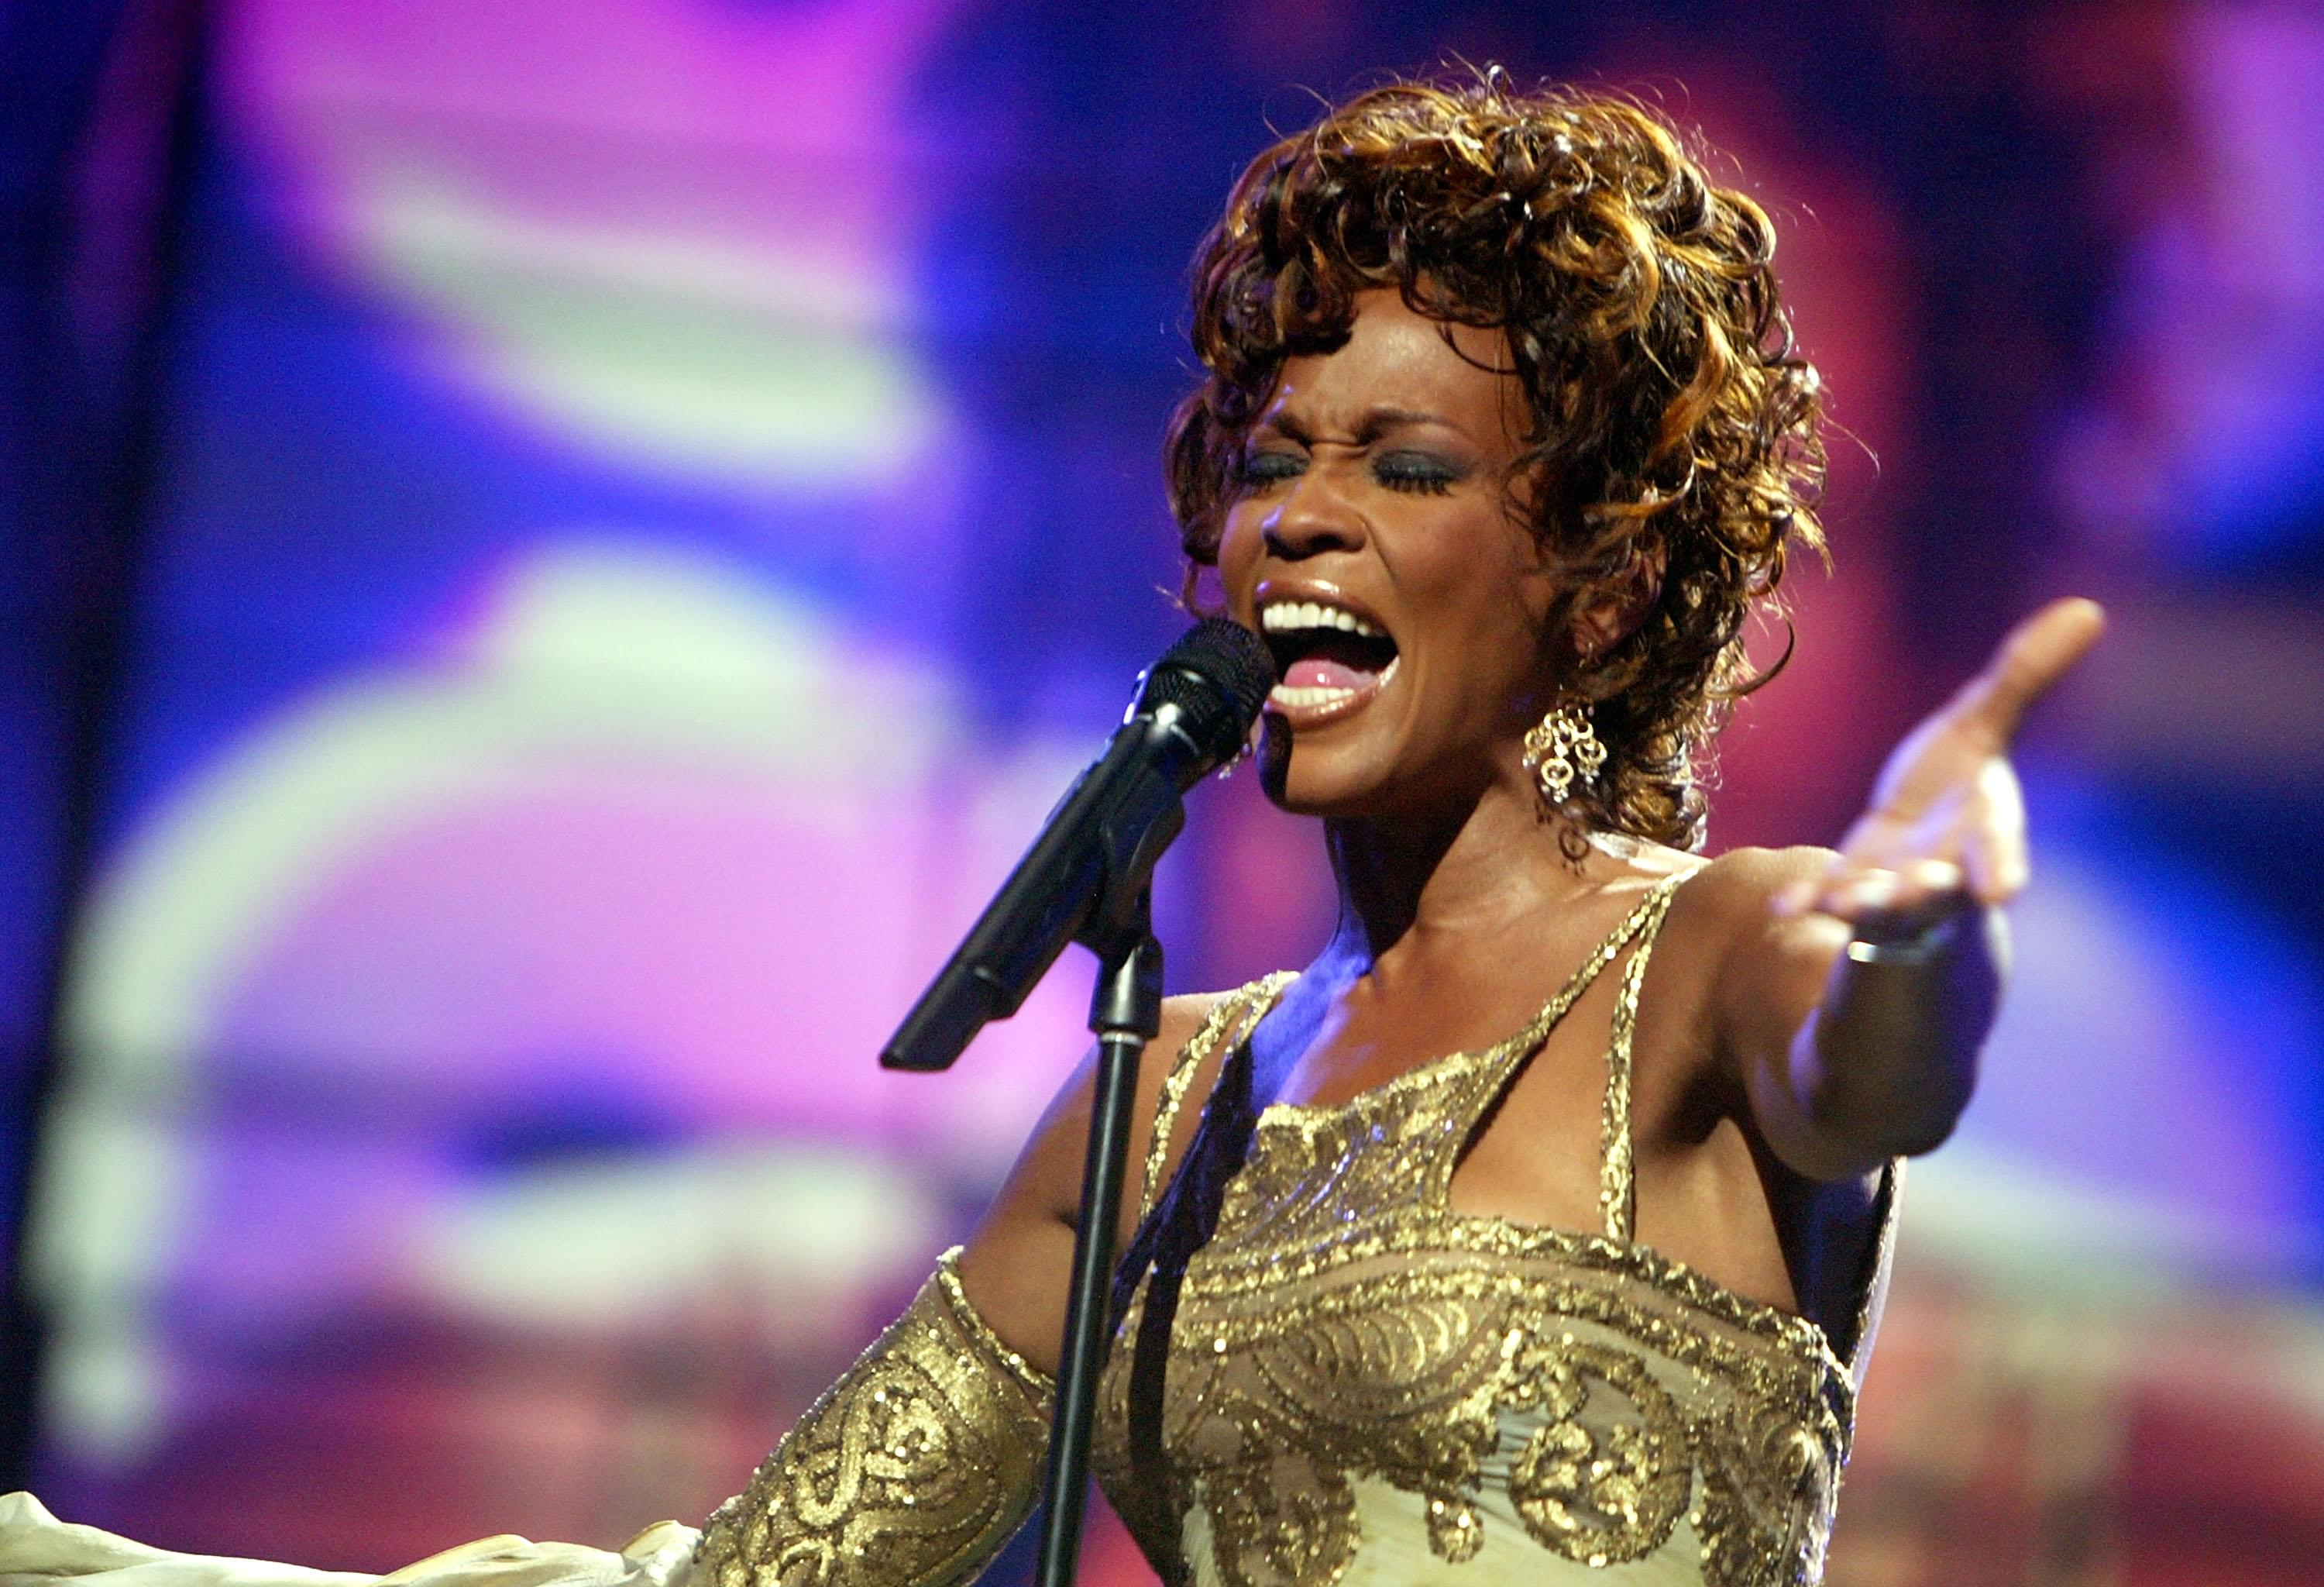 A Whitney Houston hologram residency is coming to Las Vegas